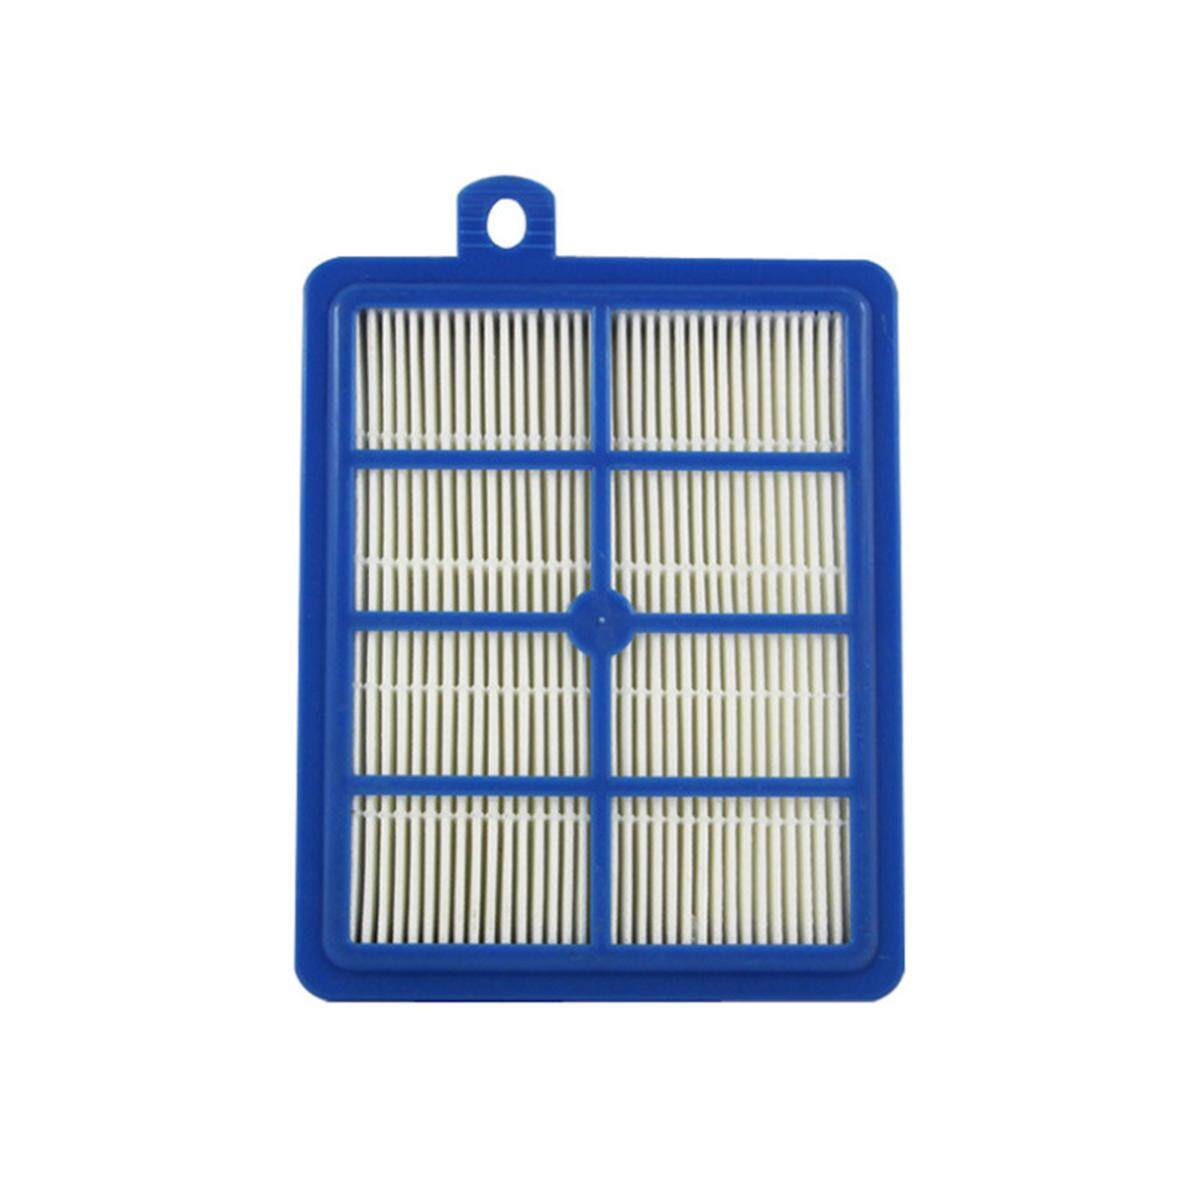 Hepa H13 Filter For Most Modern Electrolux Vacuum Cleaner By Freebang.